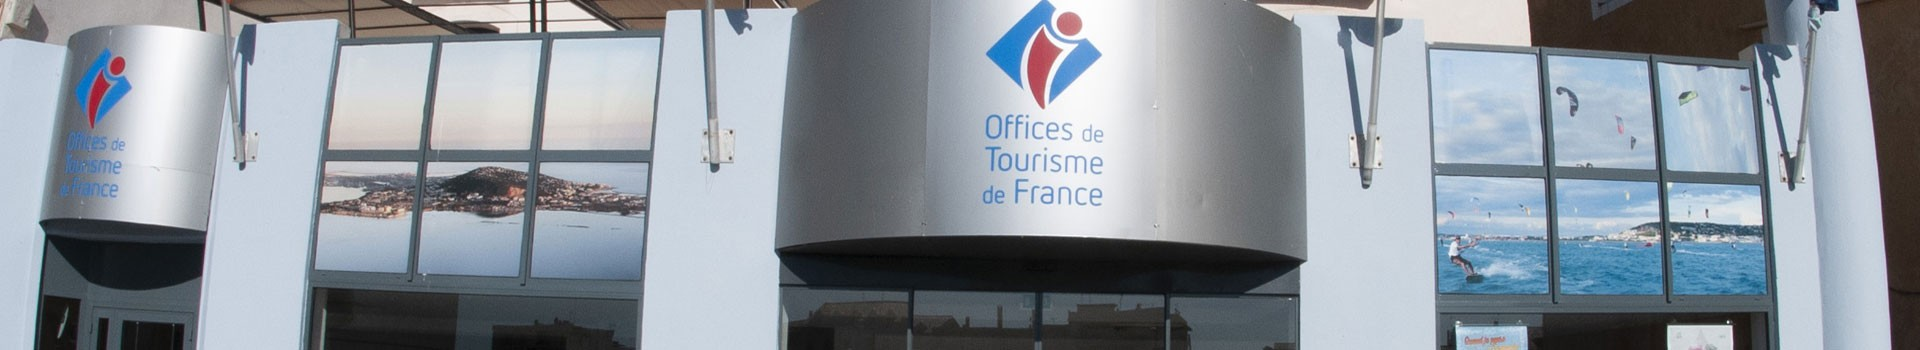 office-de-tourisme-sa-te-9988-12121-14262